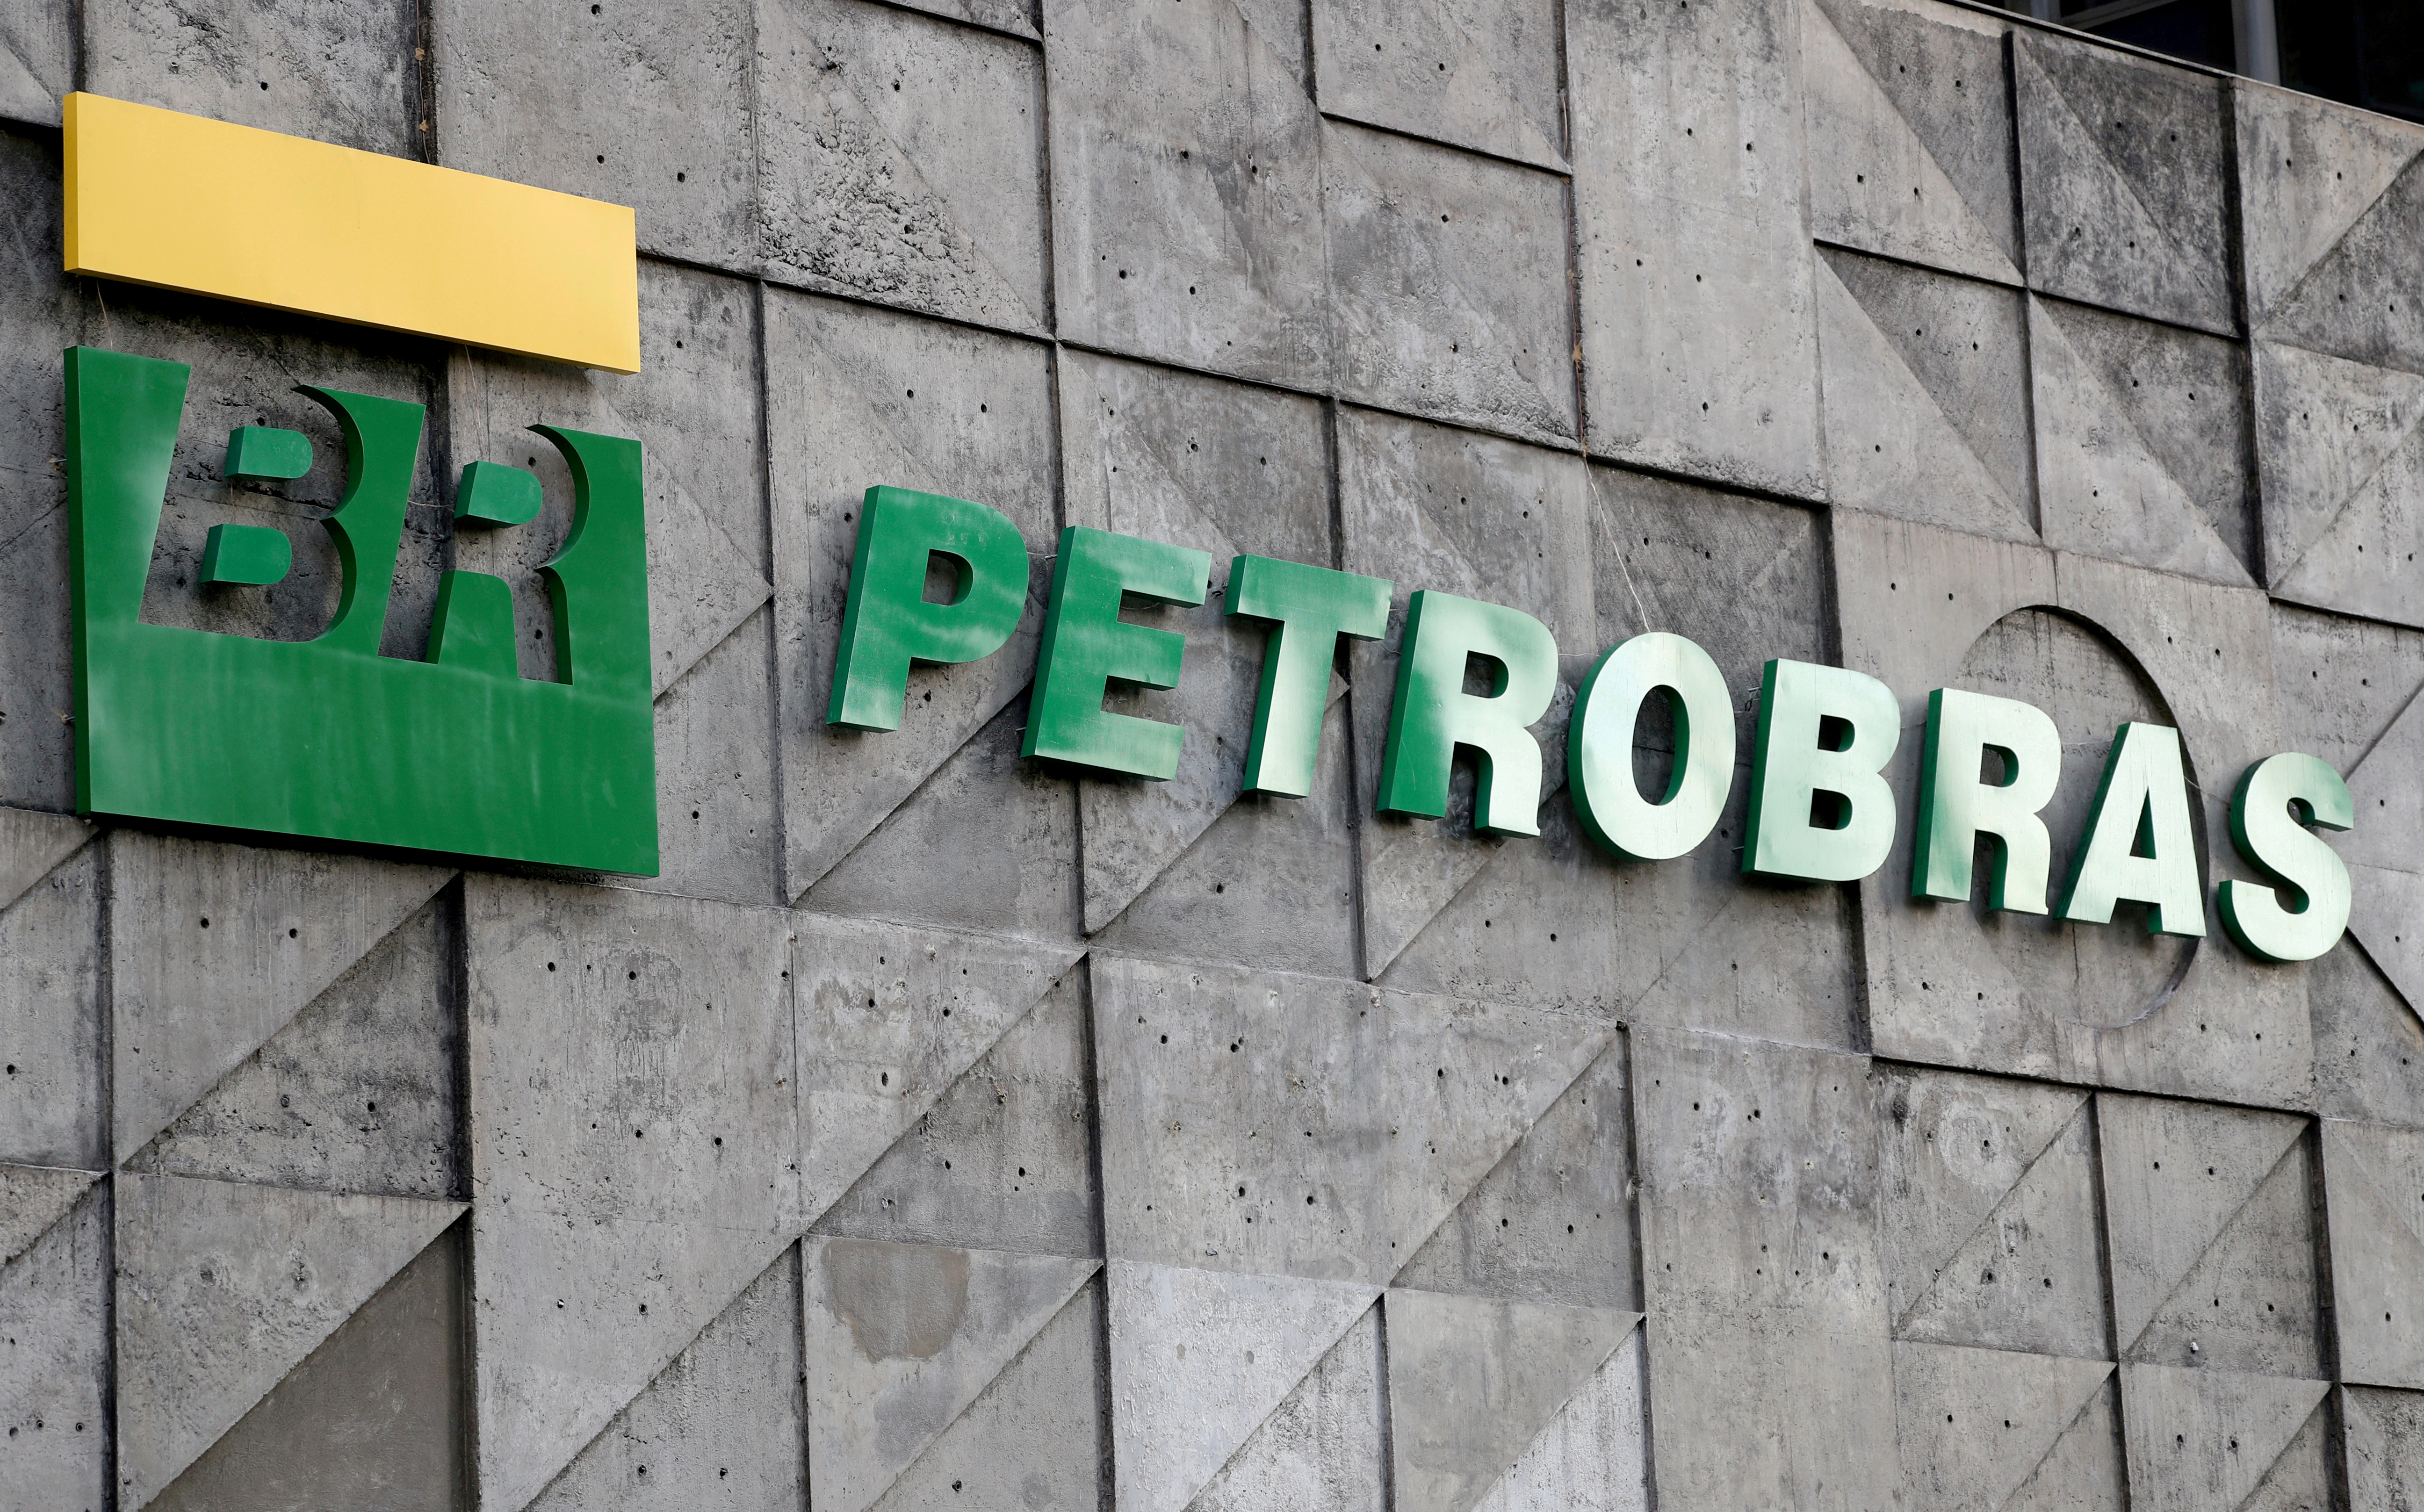 The logo of Brazil's state-run Petrobras oil company is seen at its headquarters in Rio de Janeiro, Brazil October 16, 2019. REUTERS/Sergio Moraes/File Photo